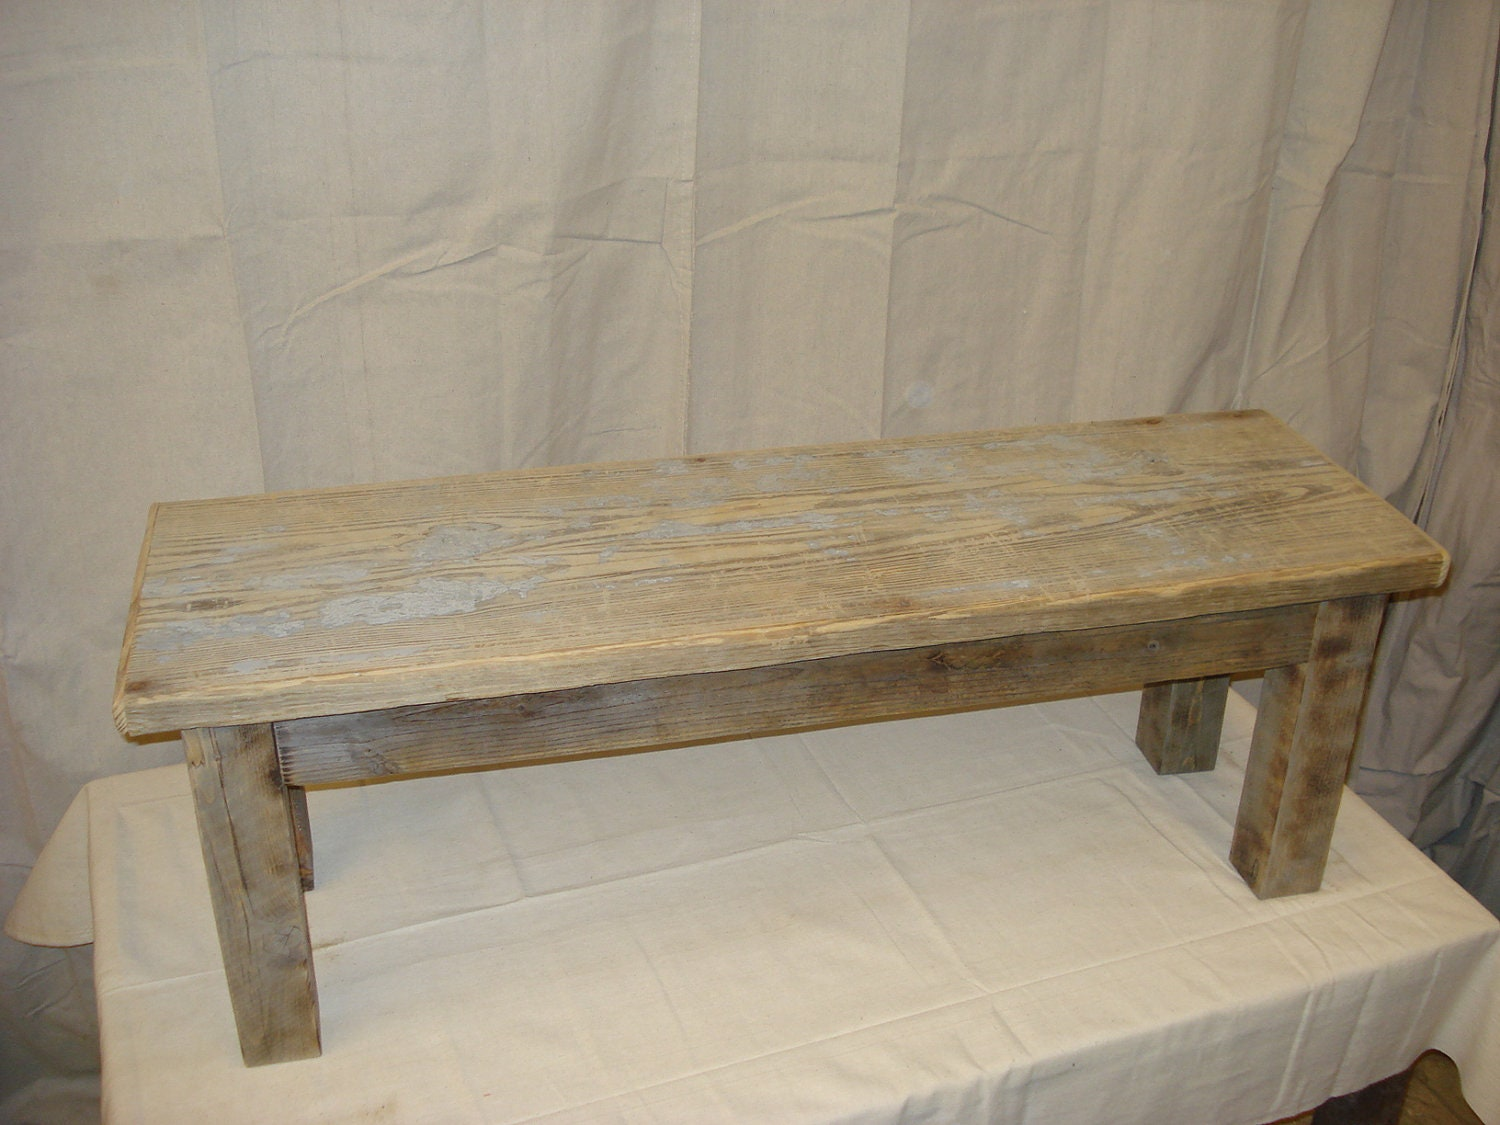 Bench Rustic Bench Reclaimed Bench Driftwood Bench Dining